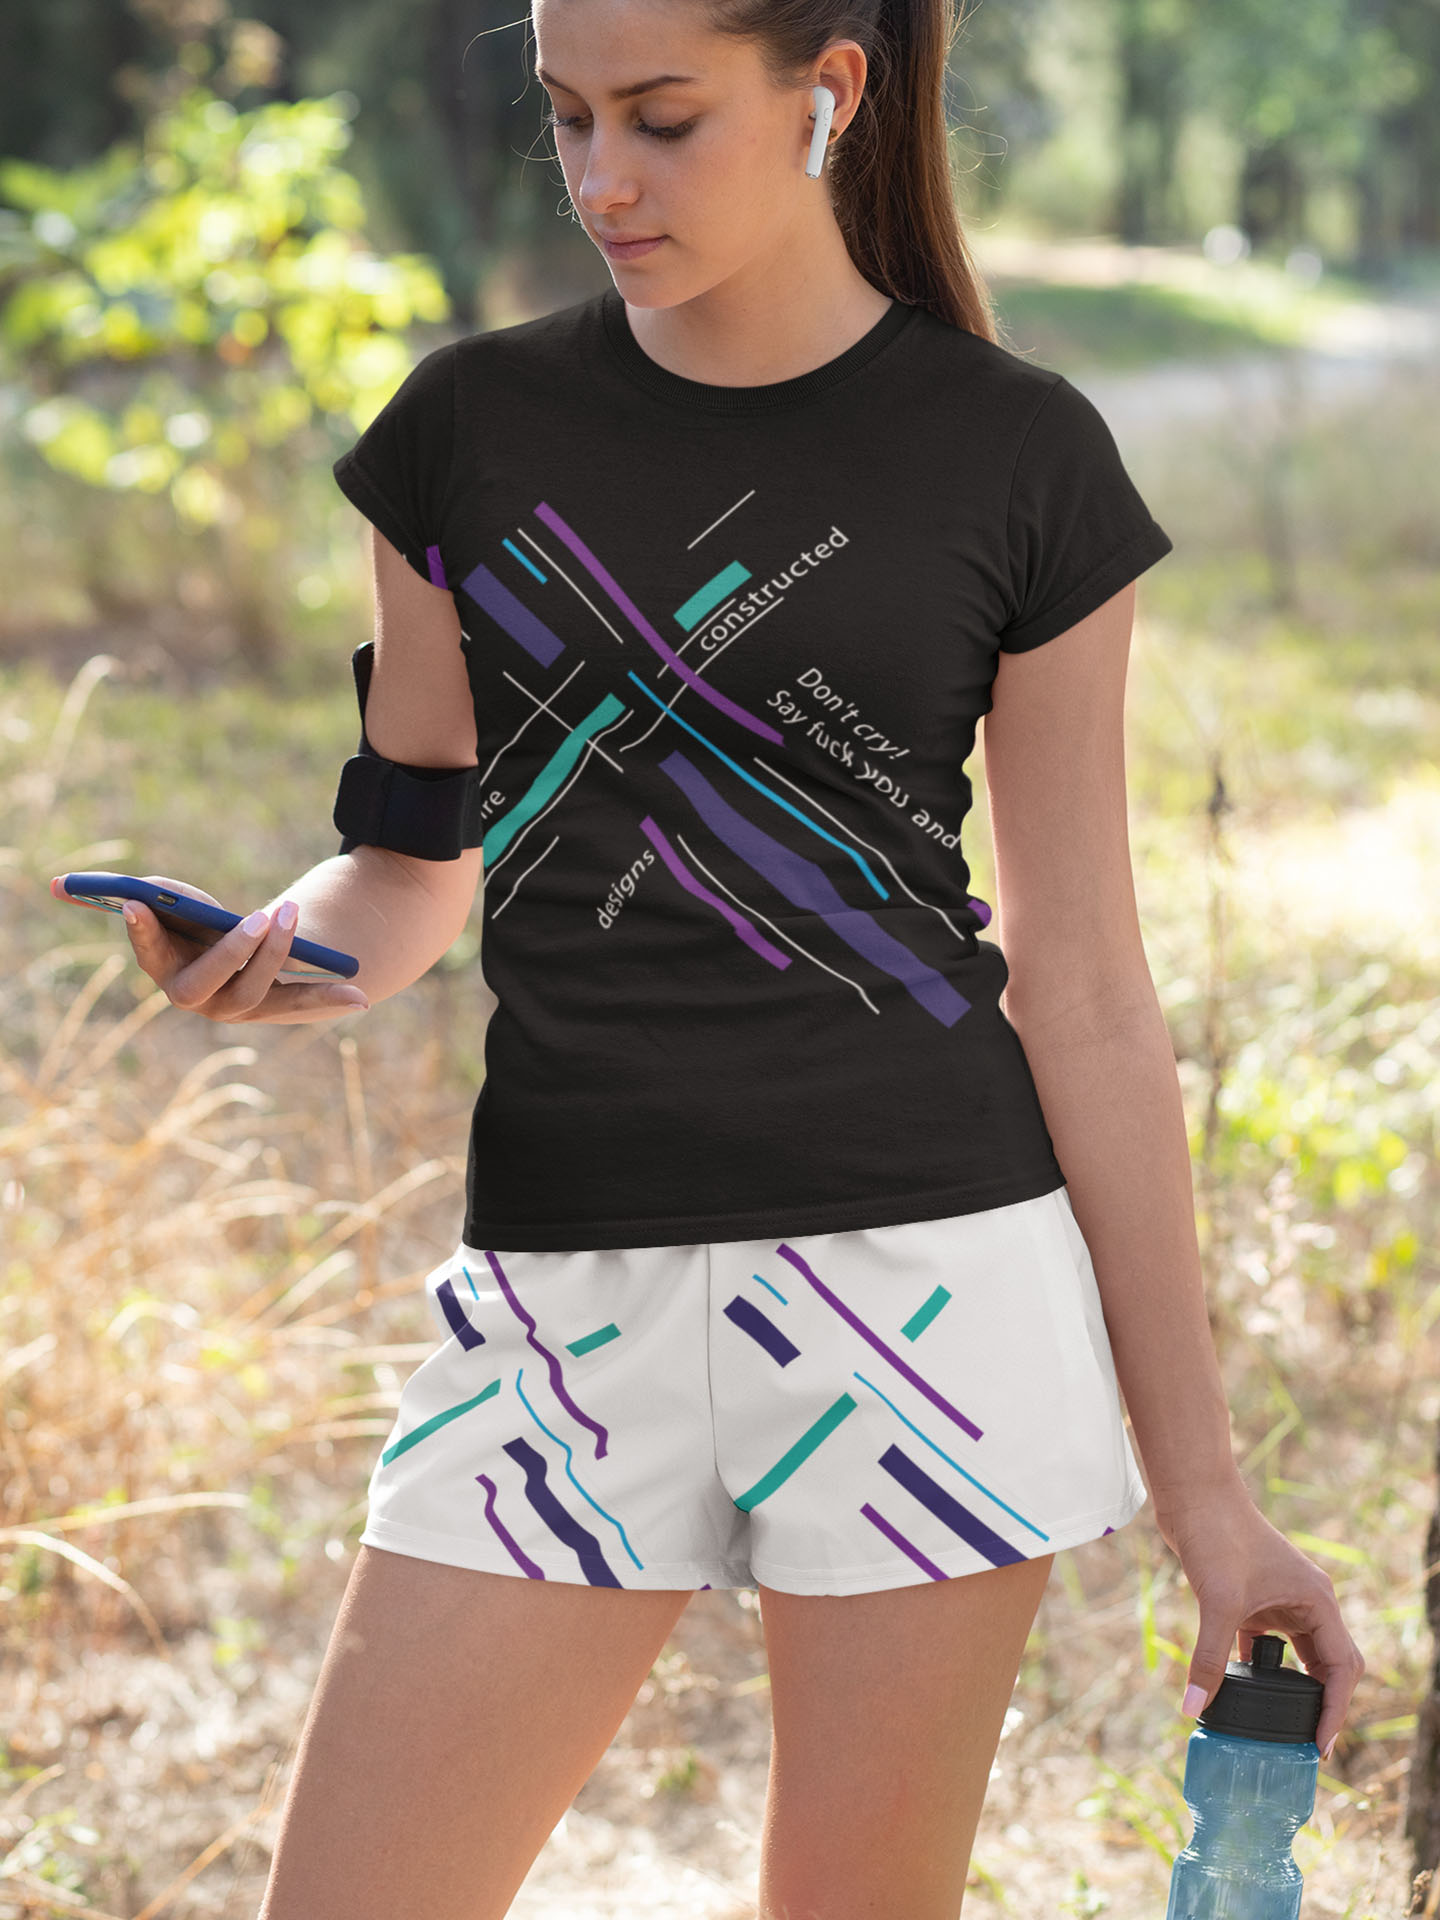 Spredshirt-Prints-Trailfire_0011_mockup-of-a-young-woman-wearing-a-sublimated-t-shirt-and-shorts-33079